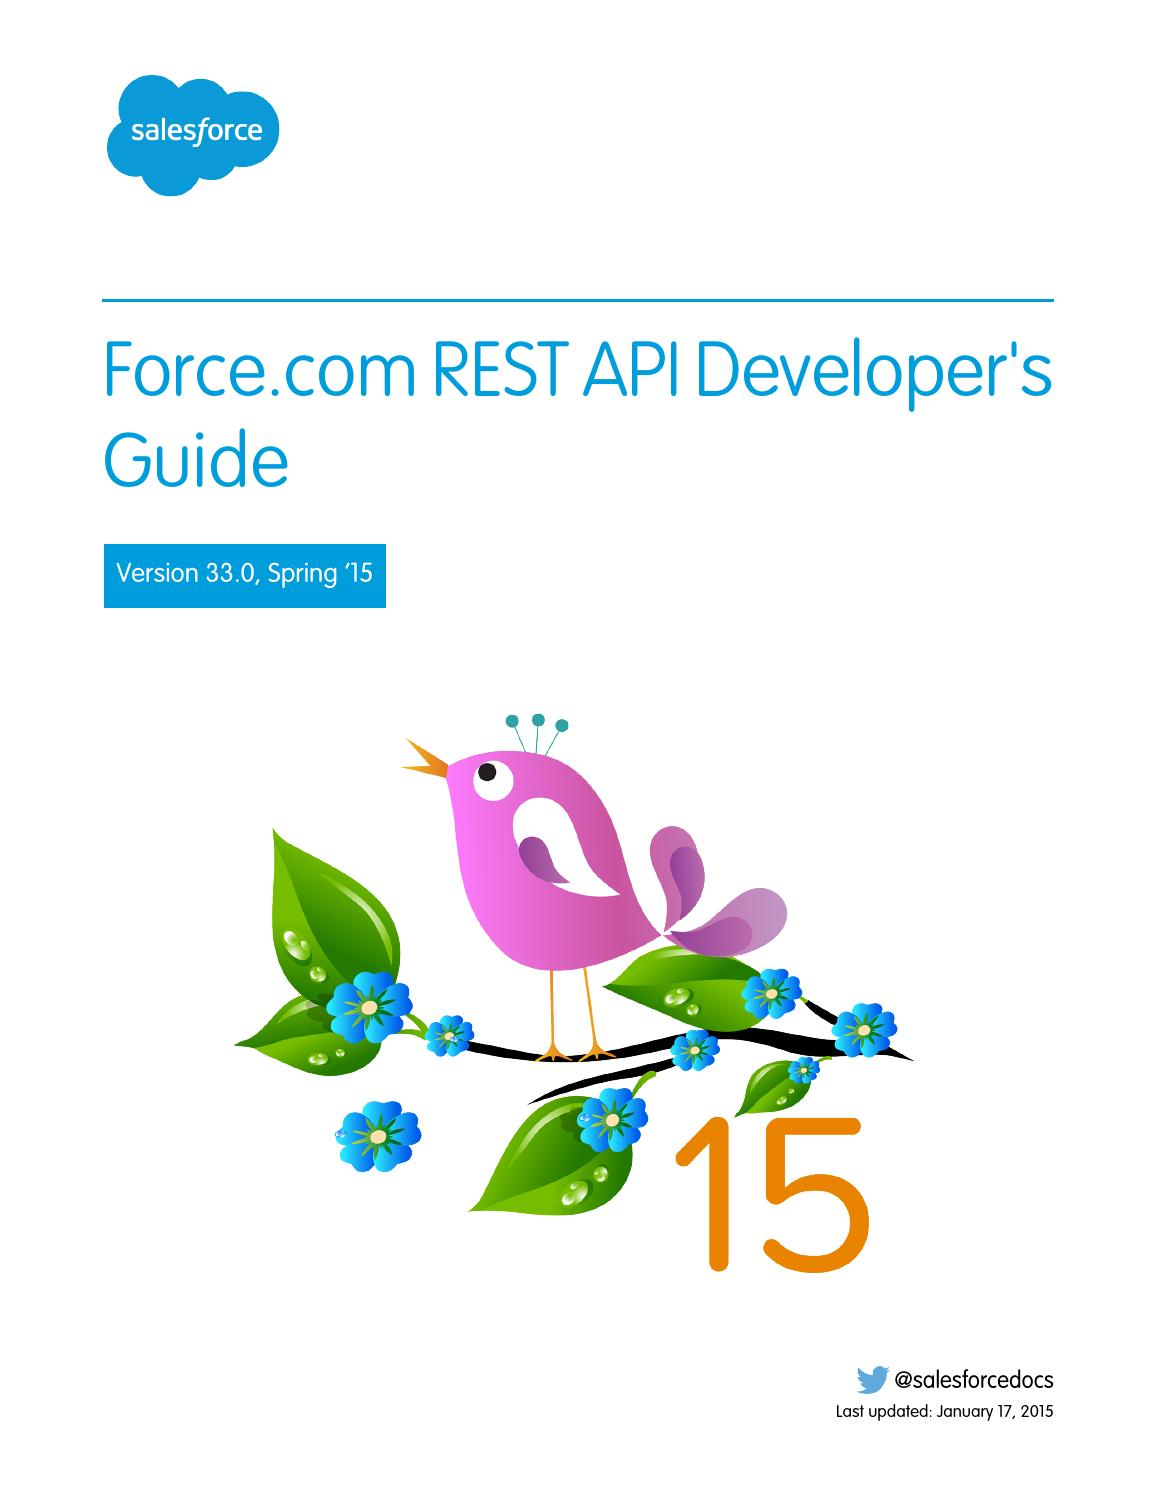 salesforce rest api developer guide pdf